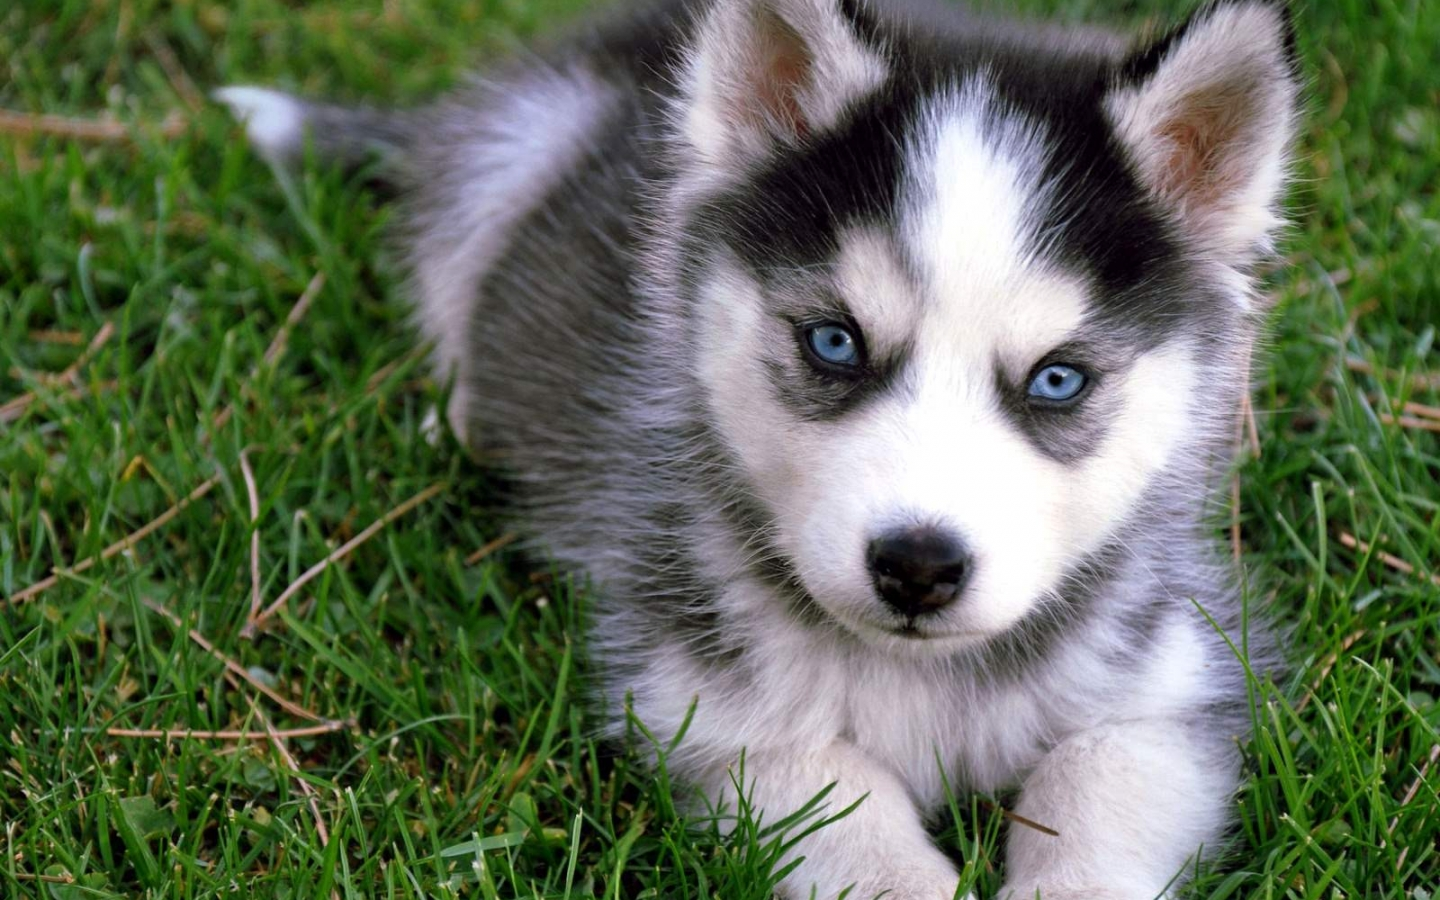 Cute Siberian Husky Puppy Sitting On Grass Puppies Puppy Cute Husky Dog 3249556 Hd Wallpaper Backgrounds Download